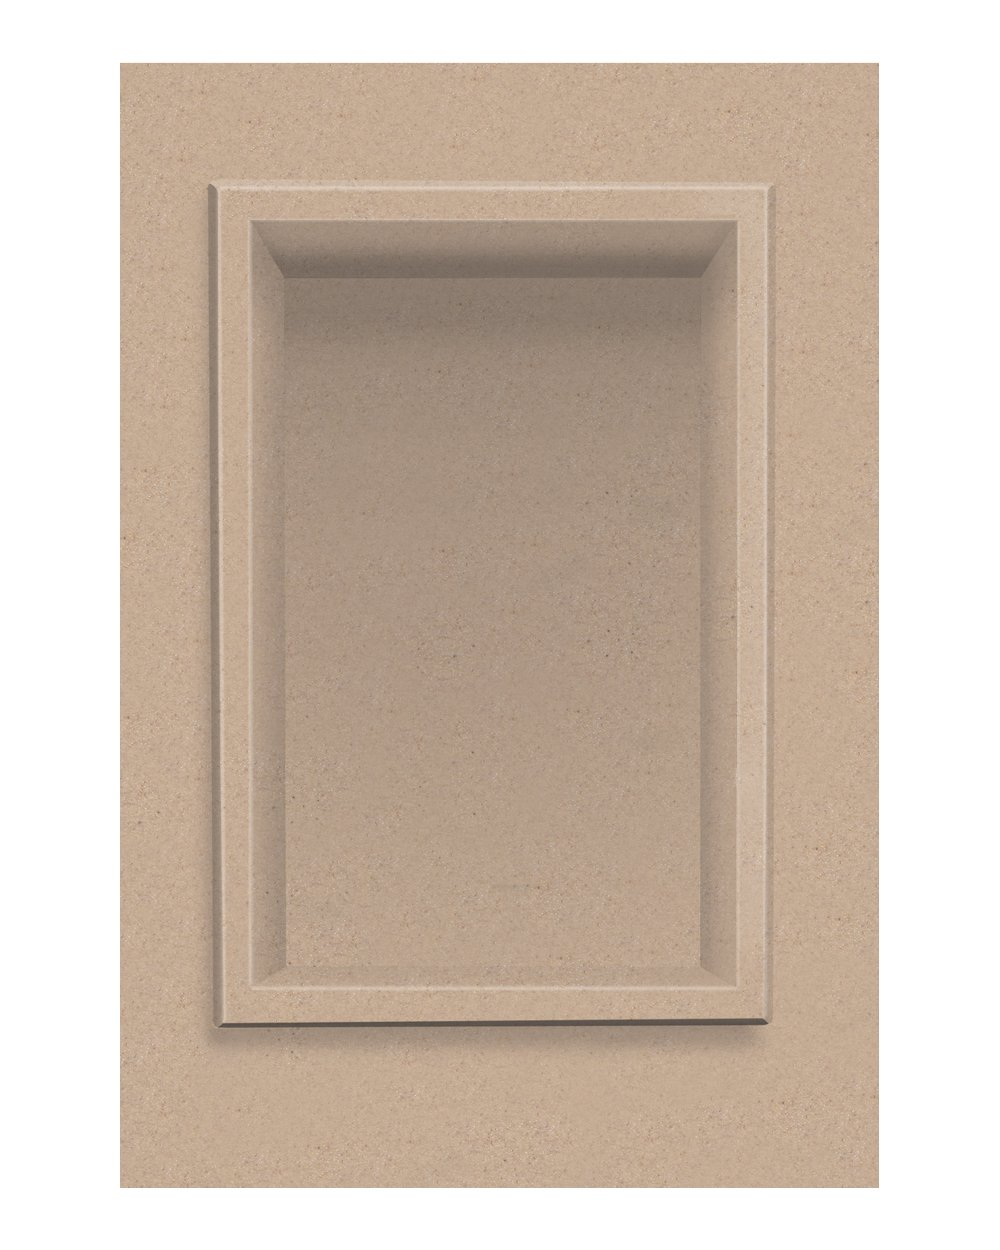 Transolid ACCESS0001-A4 Decor 7-1/2 x 11-Inch Recessed Shampoo Caddy, Sand Castle by Transolid